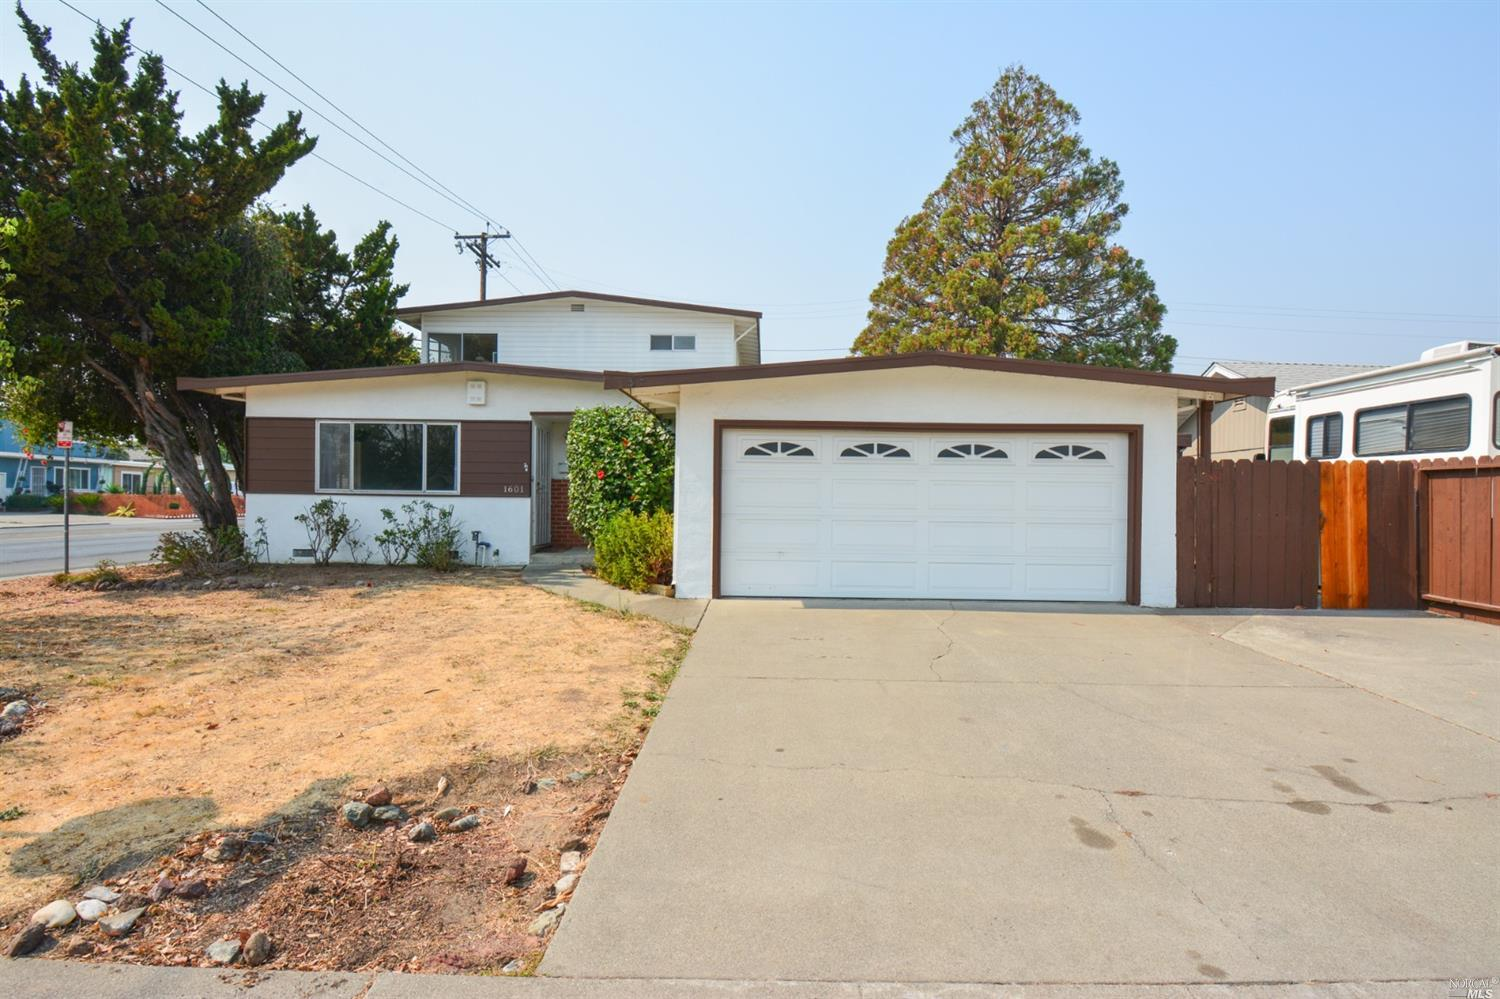 You don't want to miss this home! Charming older neighborhood close to shopping, restaurants, school